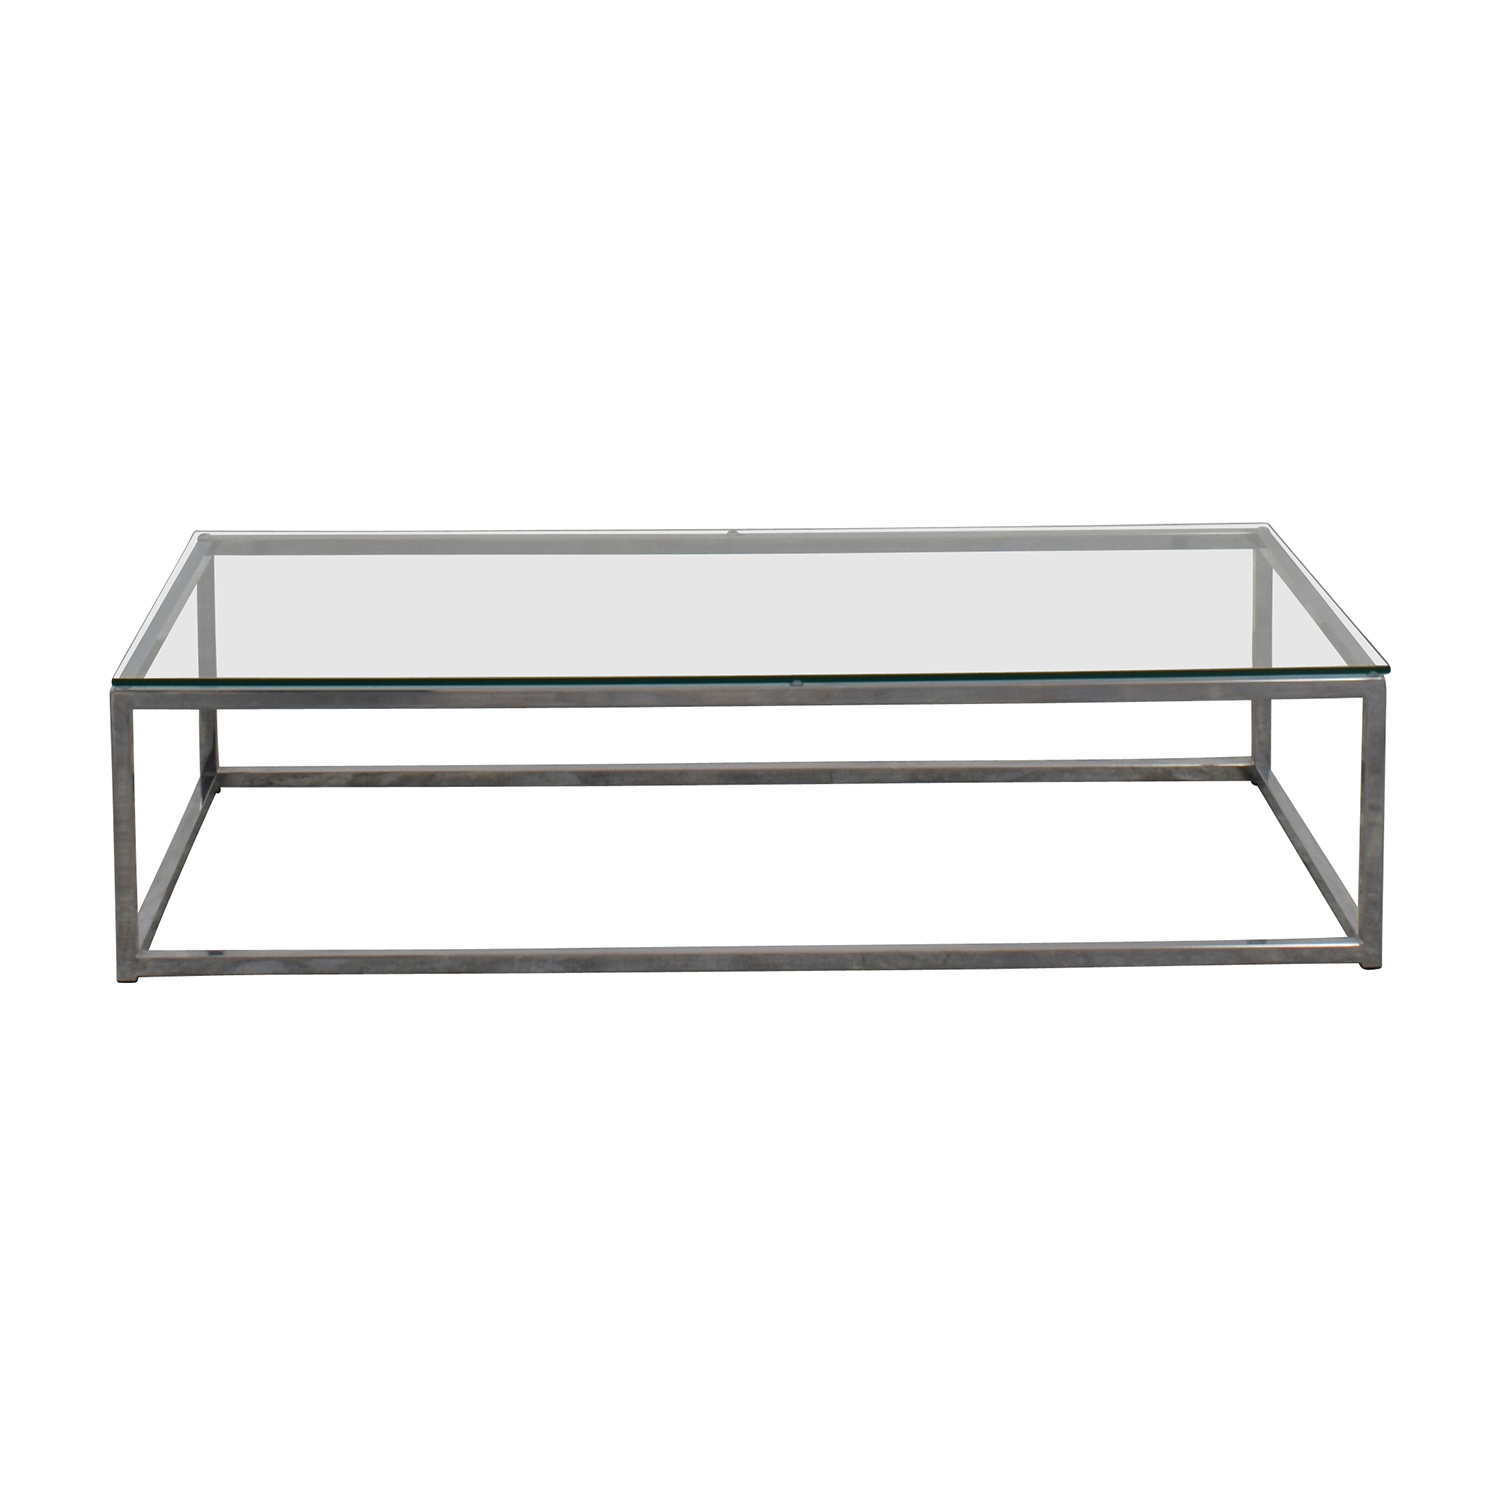 3% OFF - CB3 CB3 Smart Chrome and Glass Coffee Table / Tables